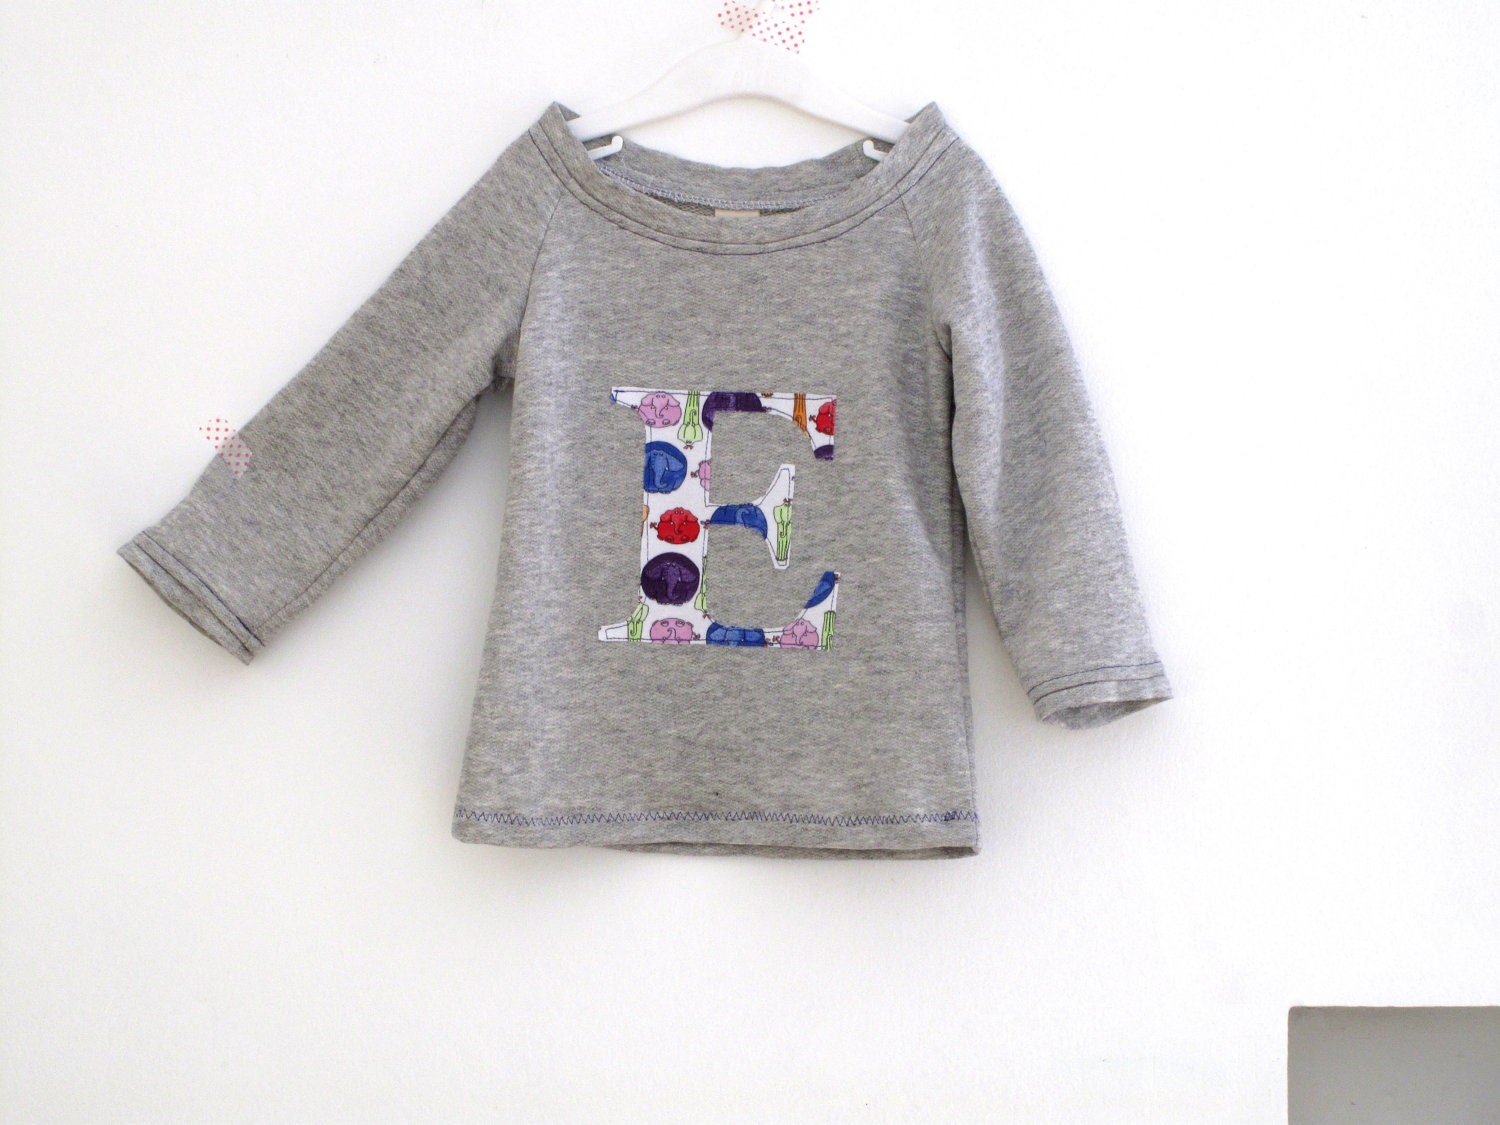 Girl sweatshirt with personalized initial, scoop neck toddler sweater, sport style heather grey sweatshirt. Sizes 3T, 4y, 5y. - arch190